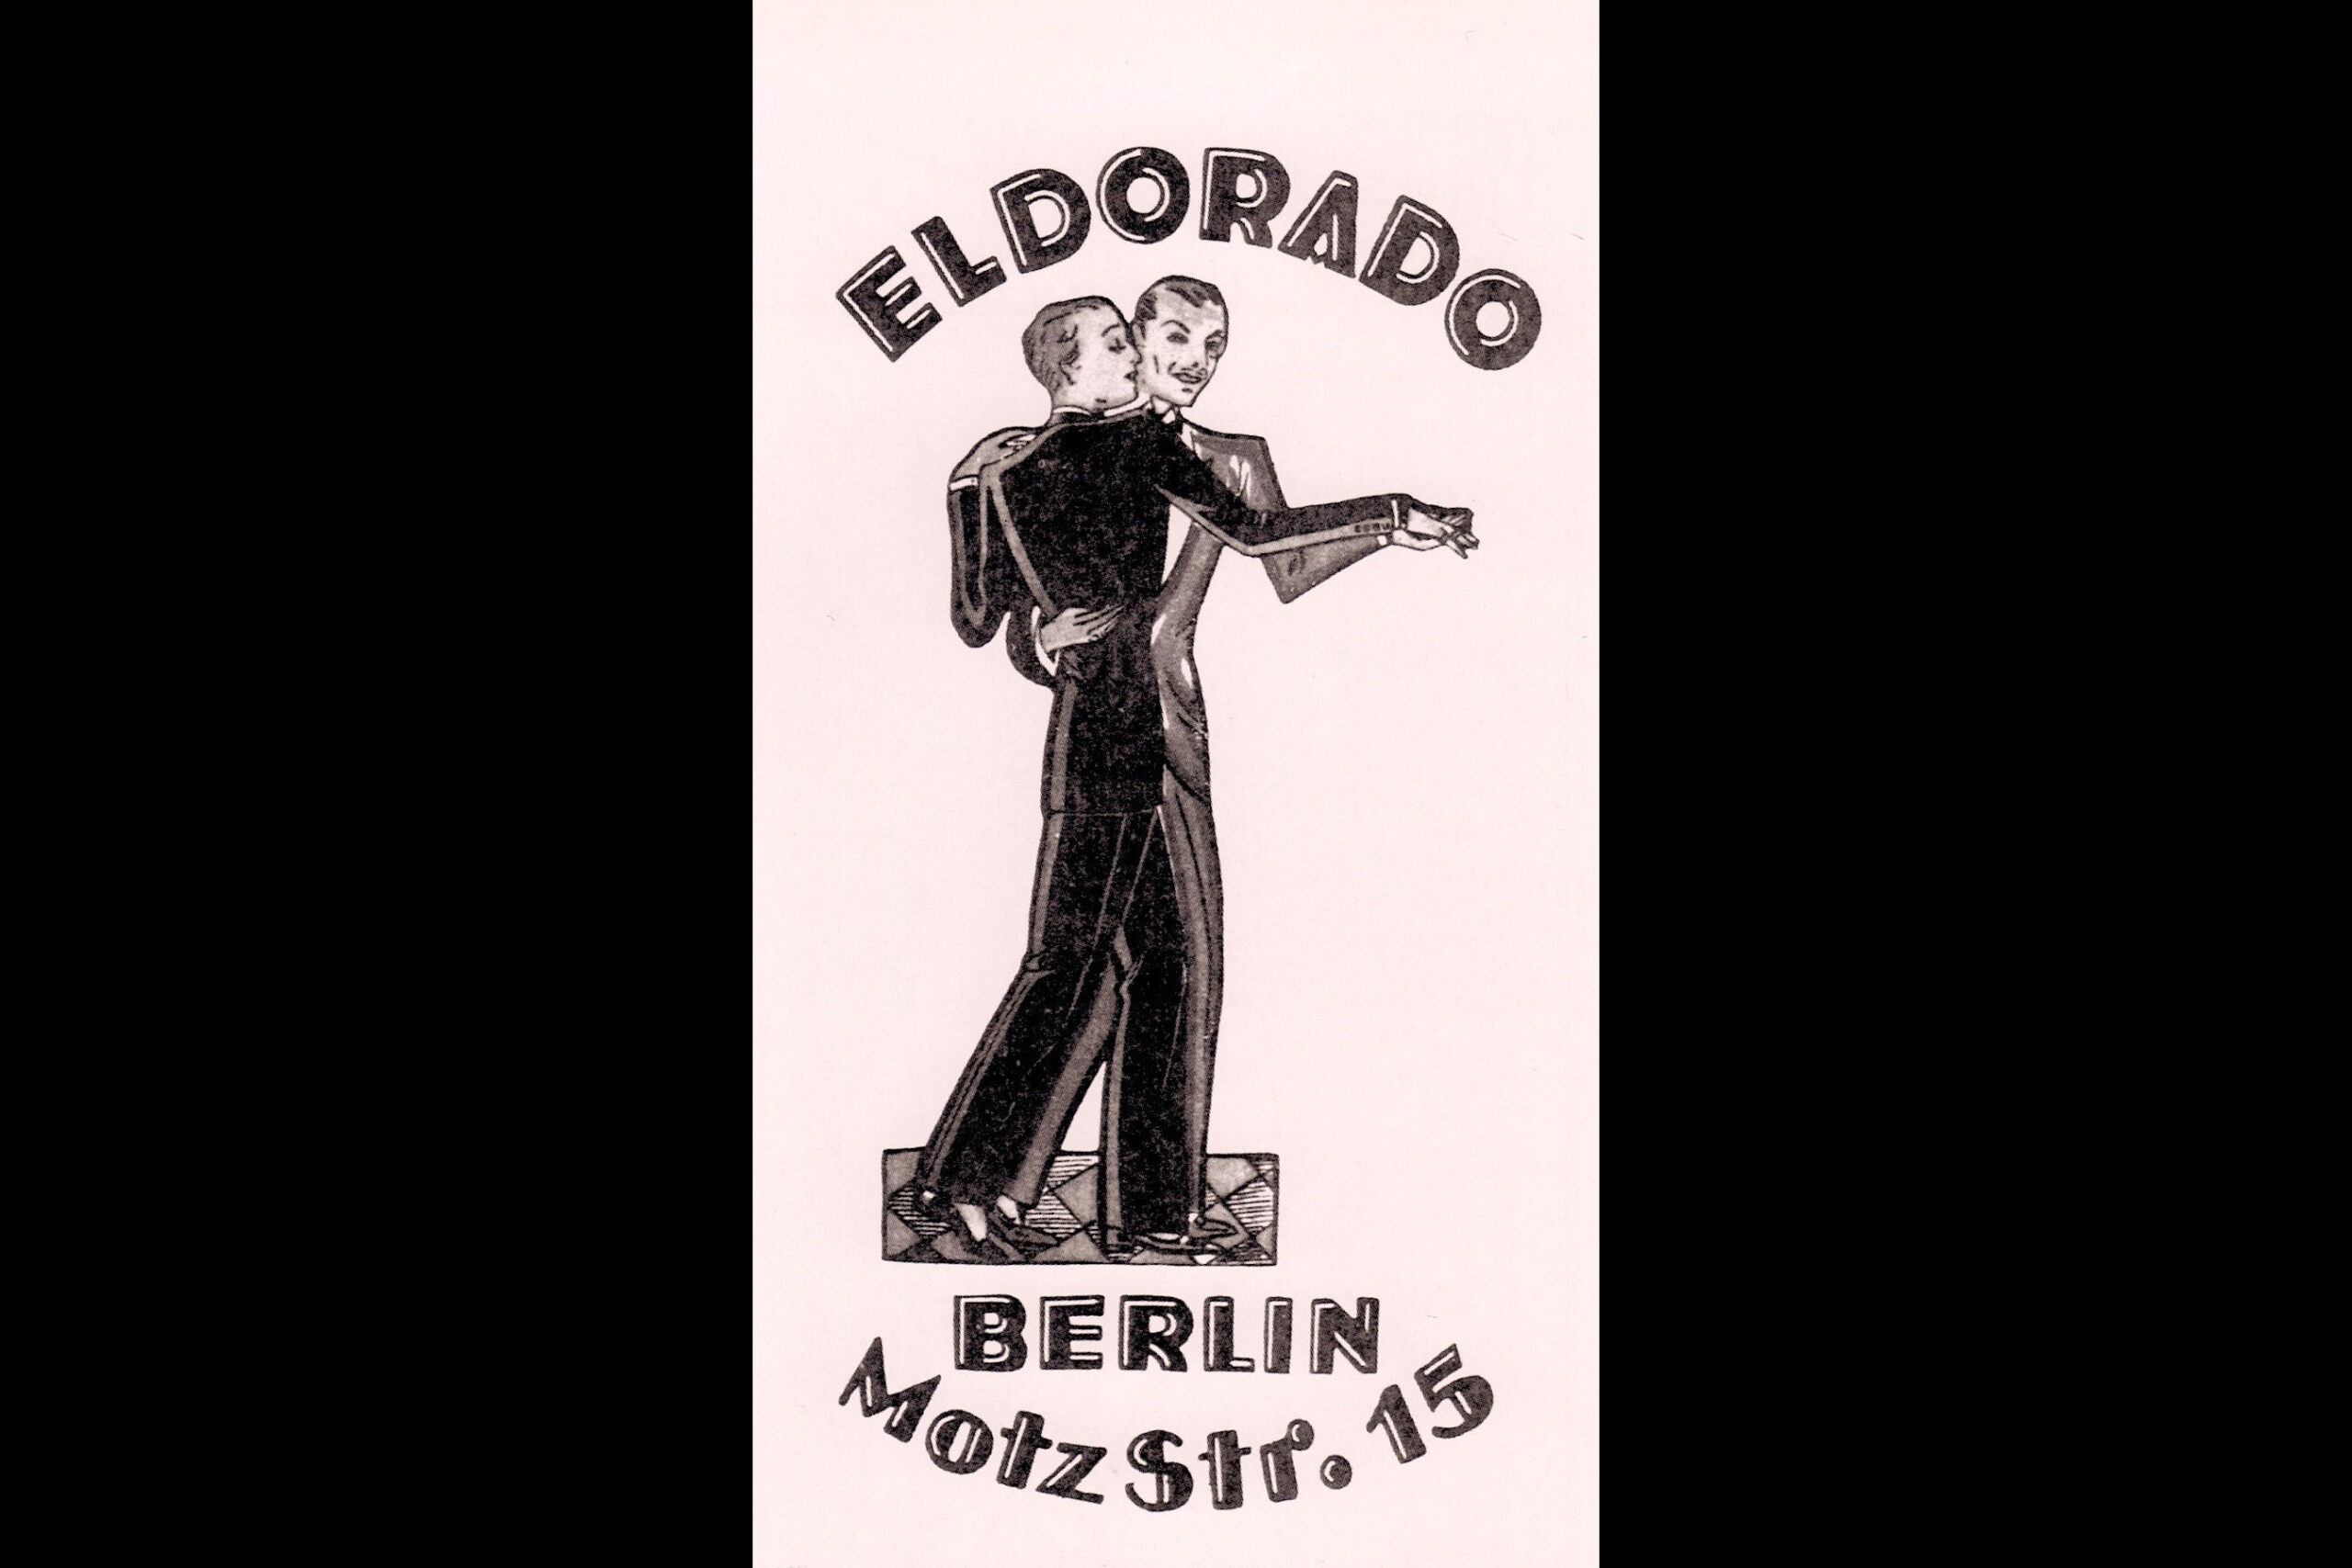 """Club poster for the Eldorado, where Marlene Dietrich performed, and where customers could buy """"chips"""" to exchange for dances with transvestite hostesses."""